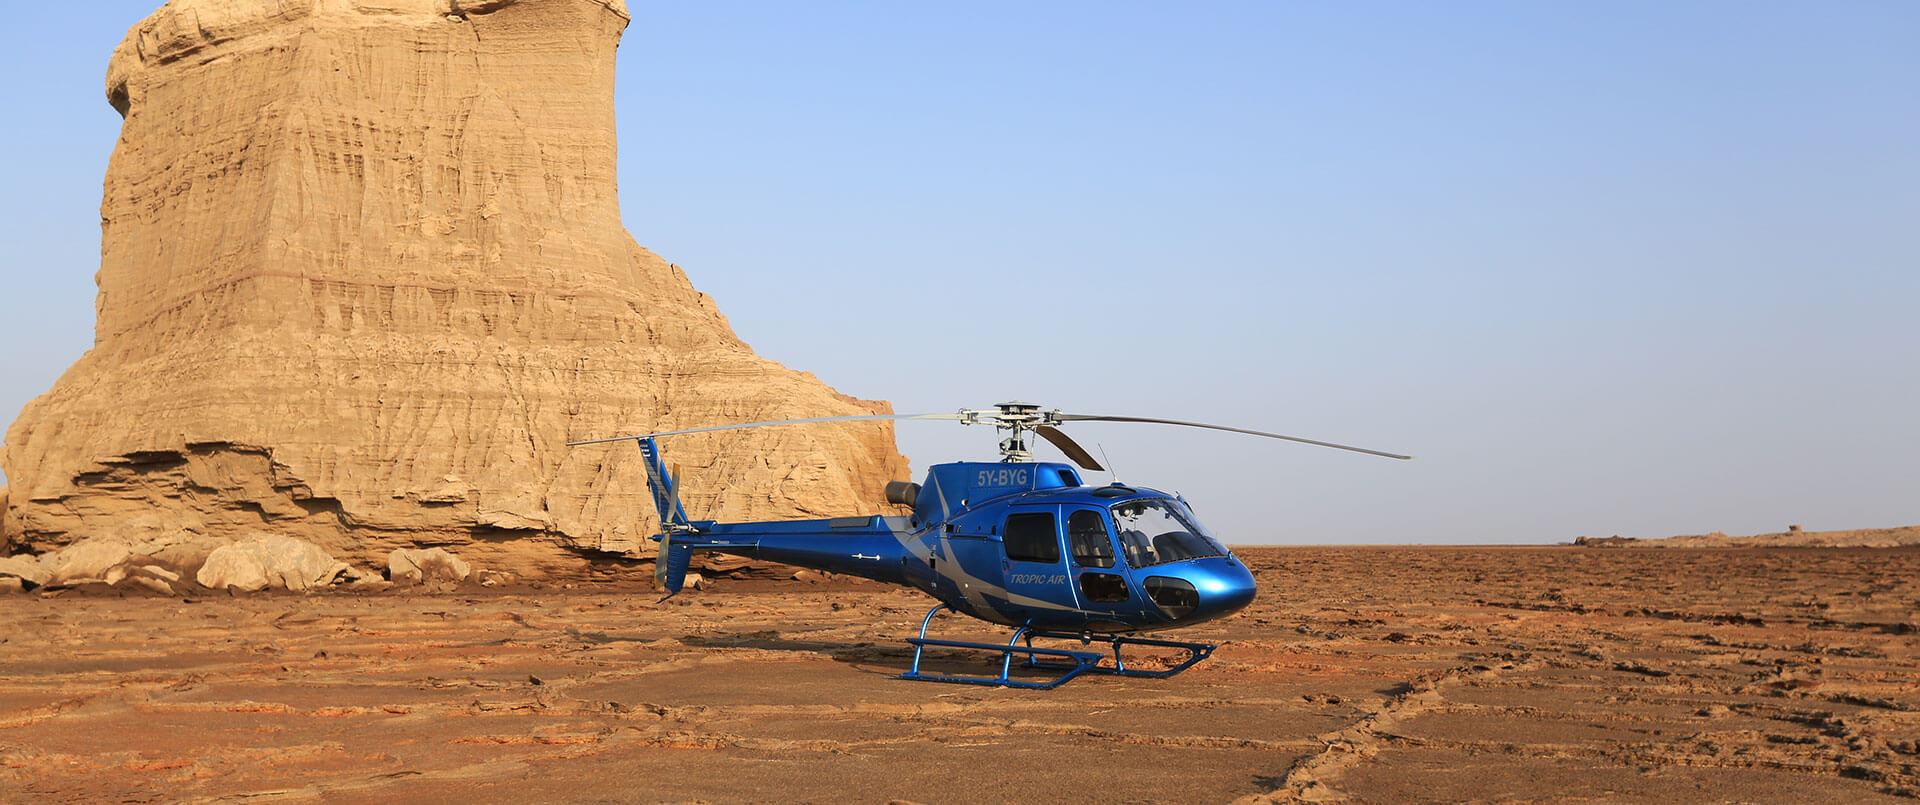 Ethiopia by Helicopter